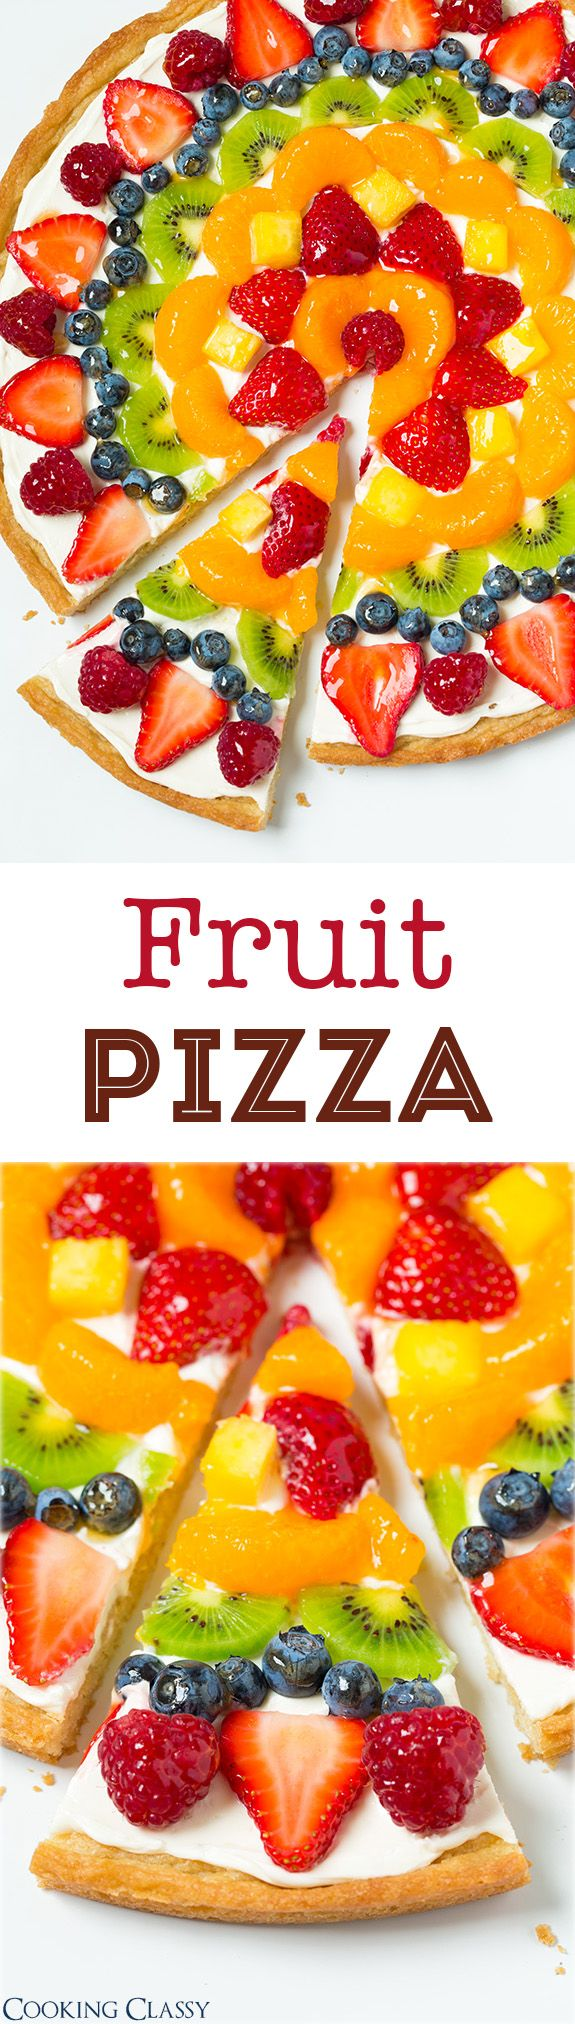 Fruit Pizza - this is one of my favorite summer desserts Love the sweet cream cheese topping with all the fresh fruit (recipe for homemade crust and store-bought method included)